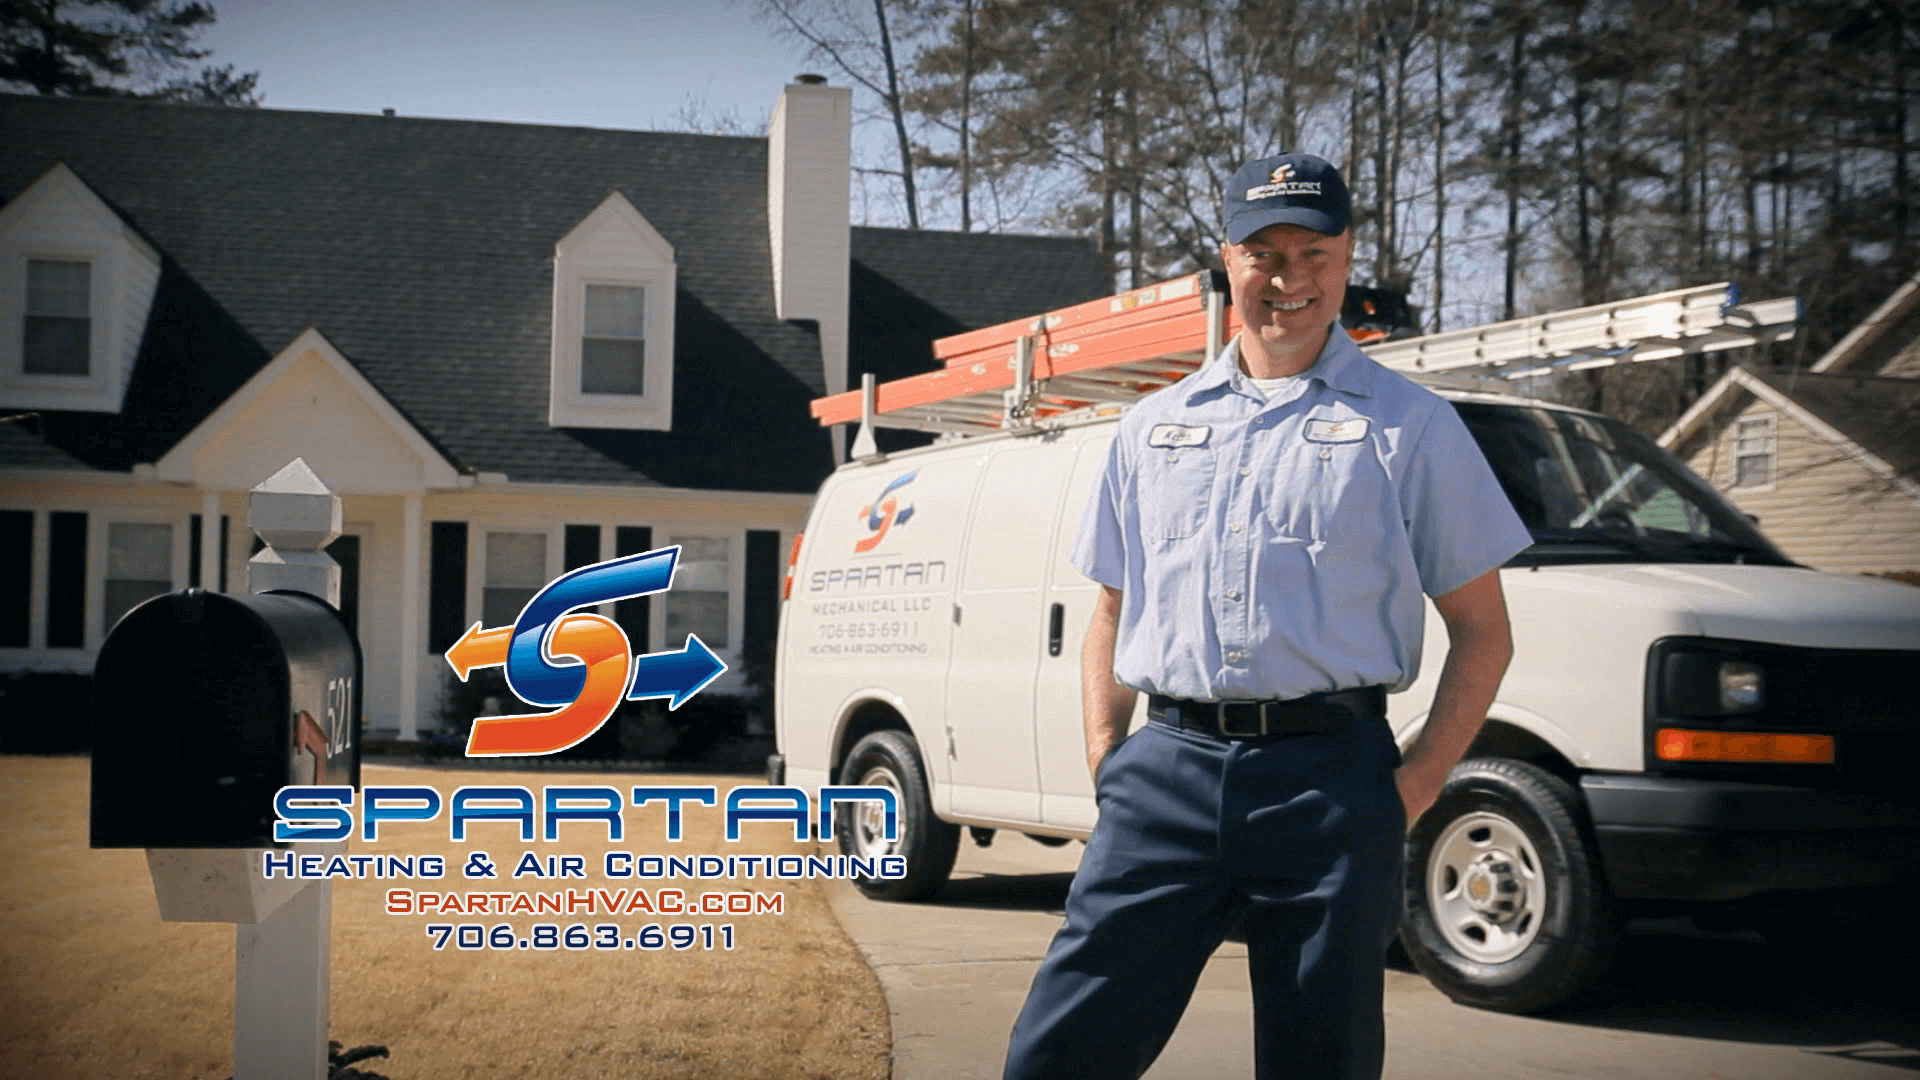 Spartan HVAC worker standing in from of van in driveway